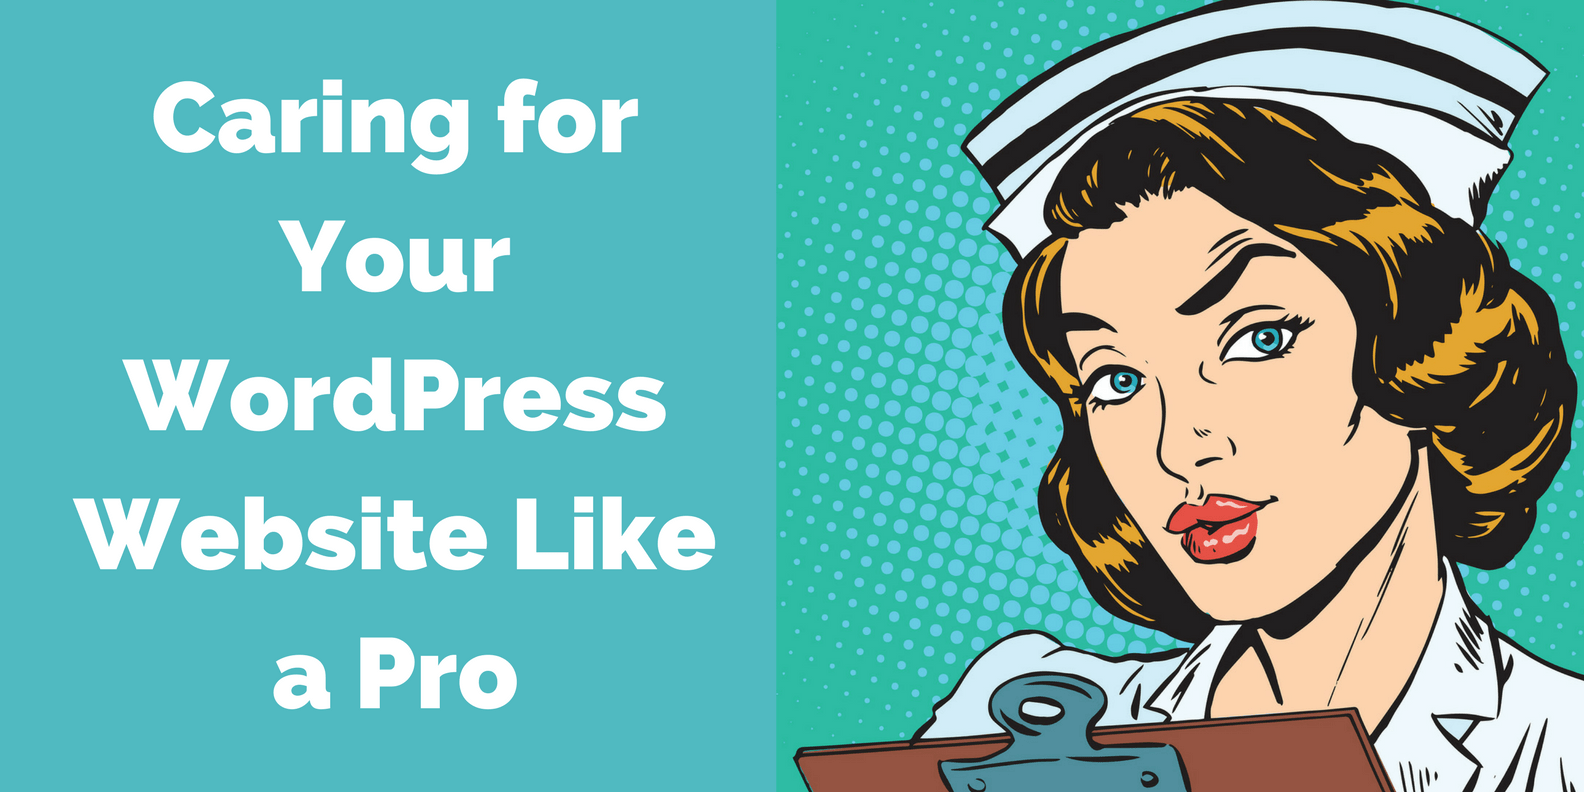 Caring for Your WordPress Website Like a Pro